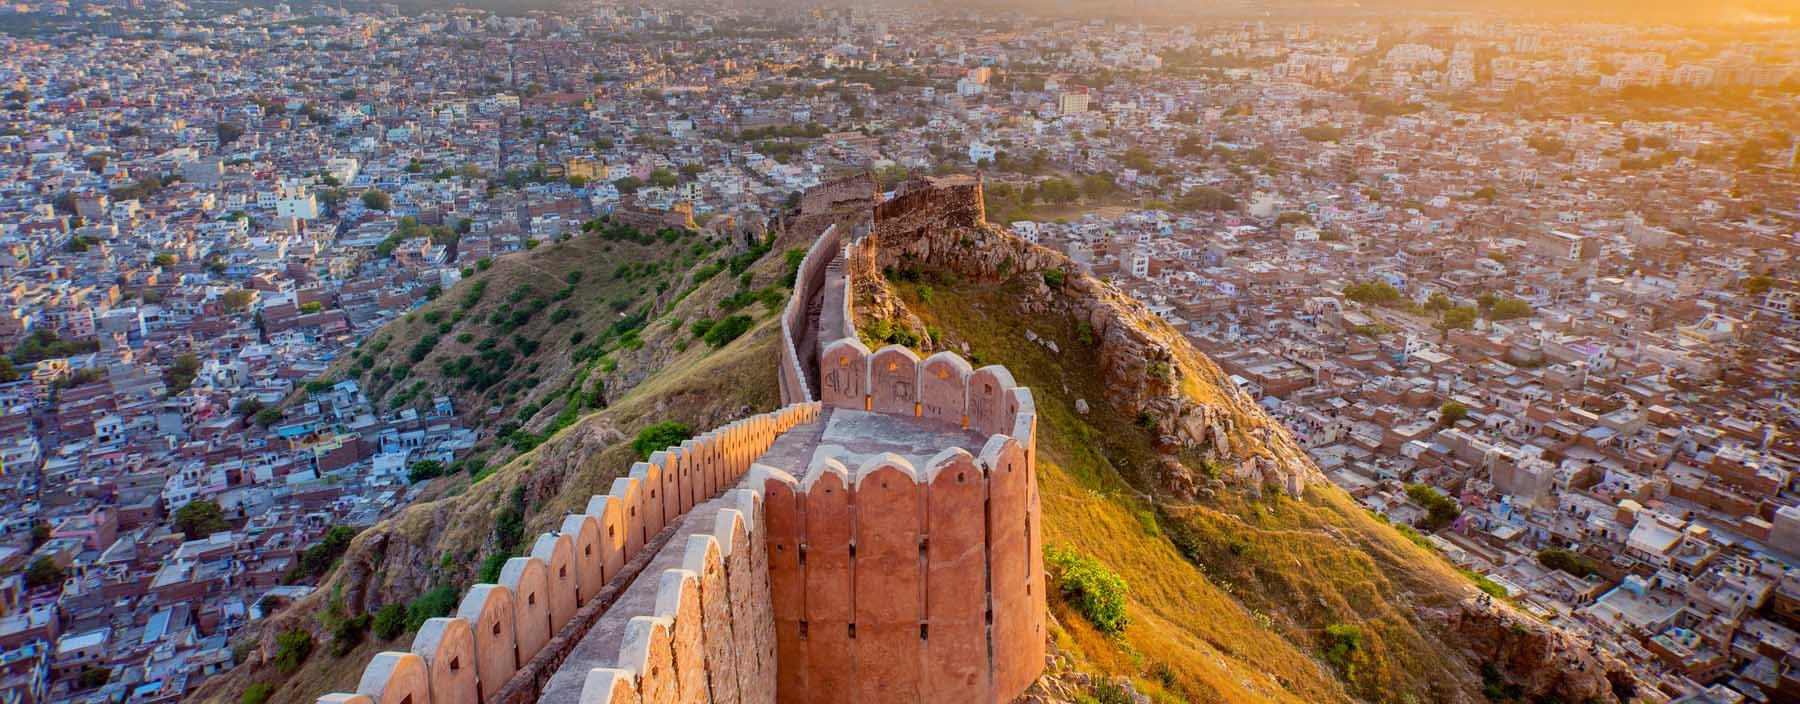 in, jaipur, view of from nahargarh fort.jpg